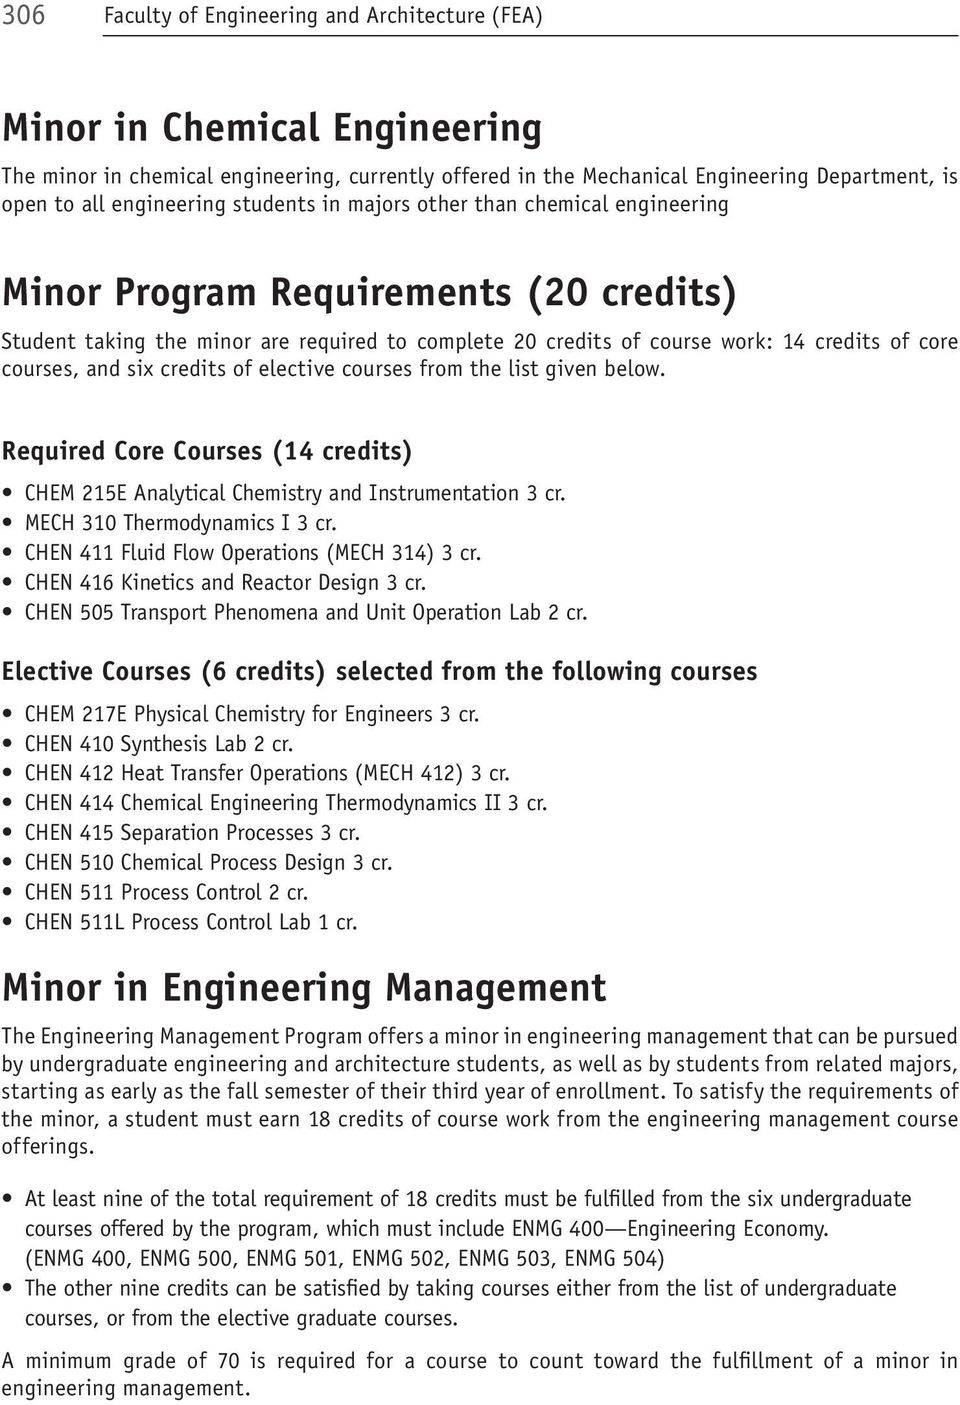 courses, and six credits of elective courses from the list given below. Required Core Courses (14 credits) CHEM 215E Analytical Chemistry and Instrumentation 3 cr. MECH 310 Thermodynamics I 3 cr.